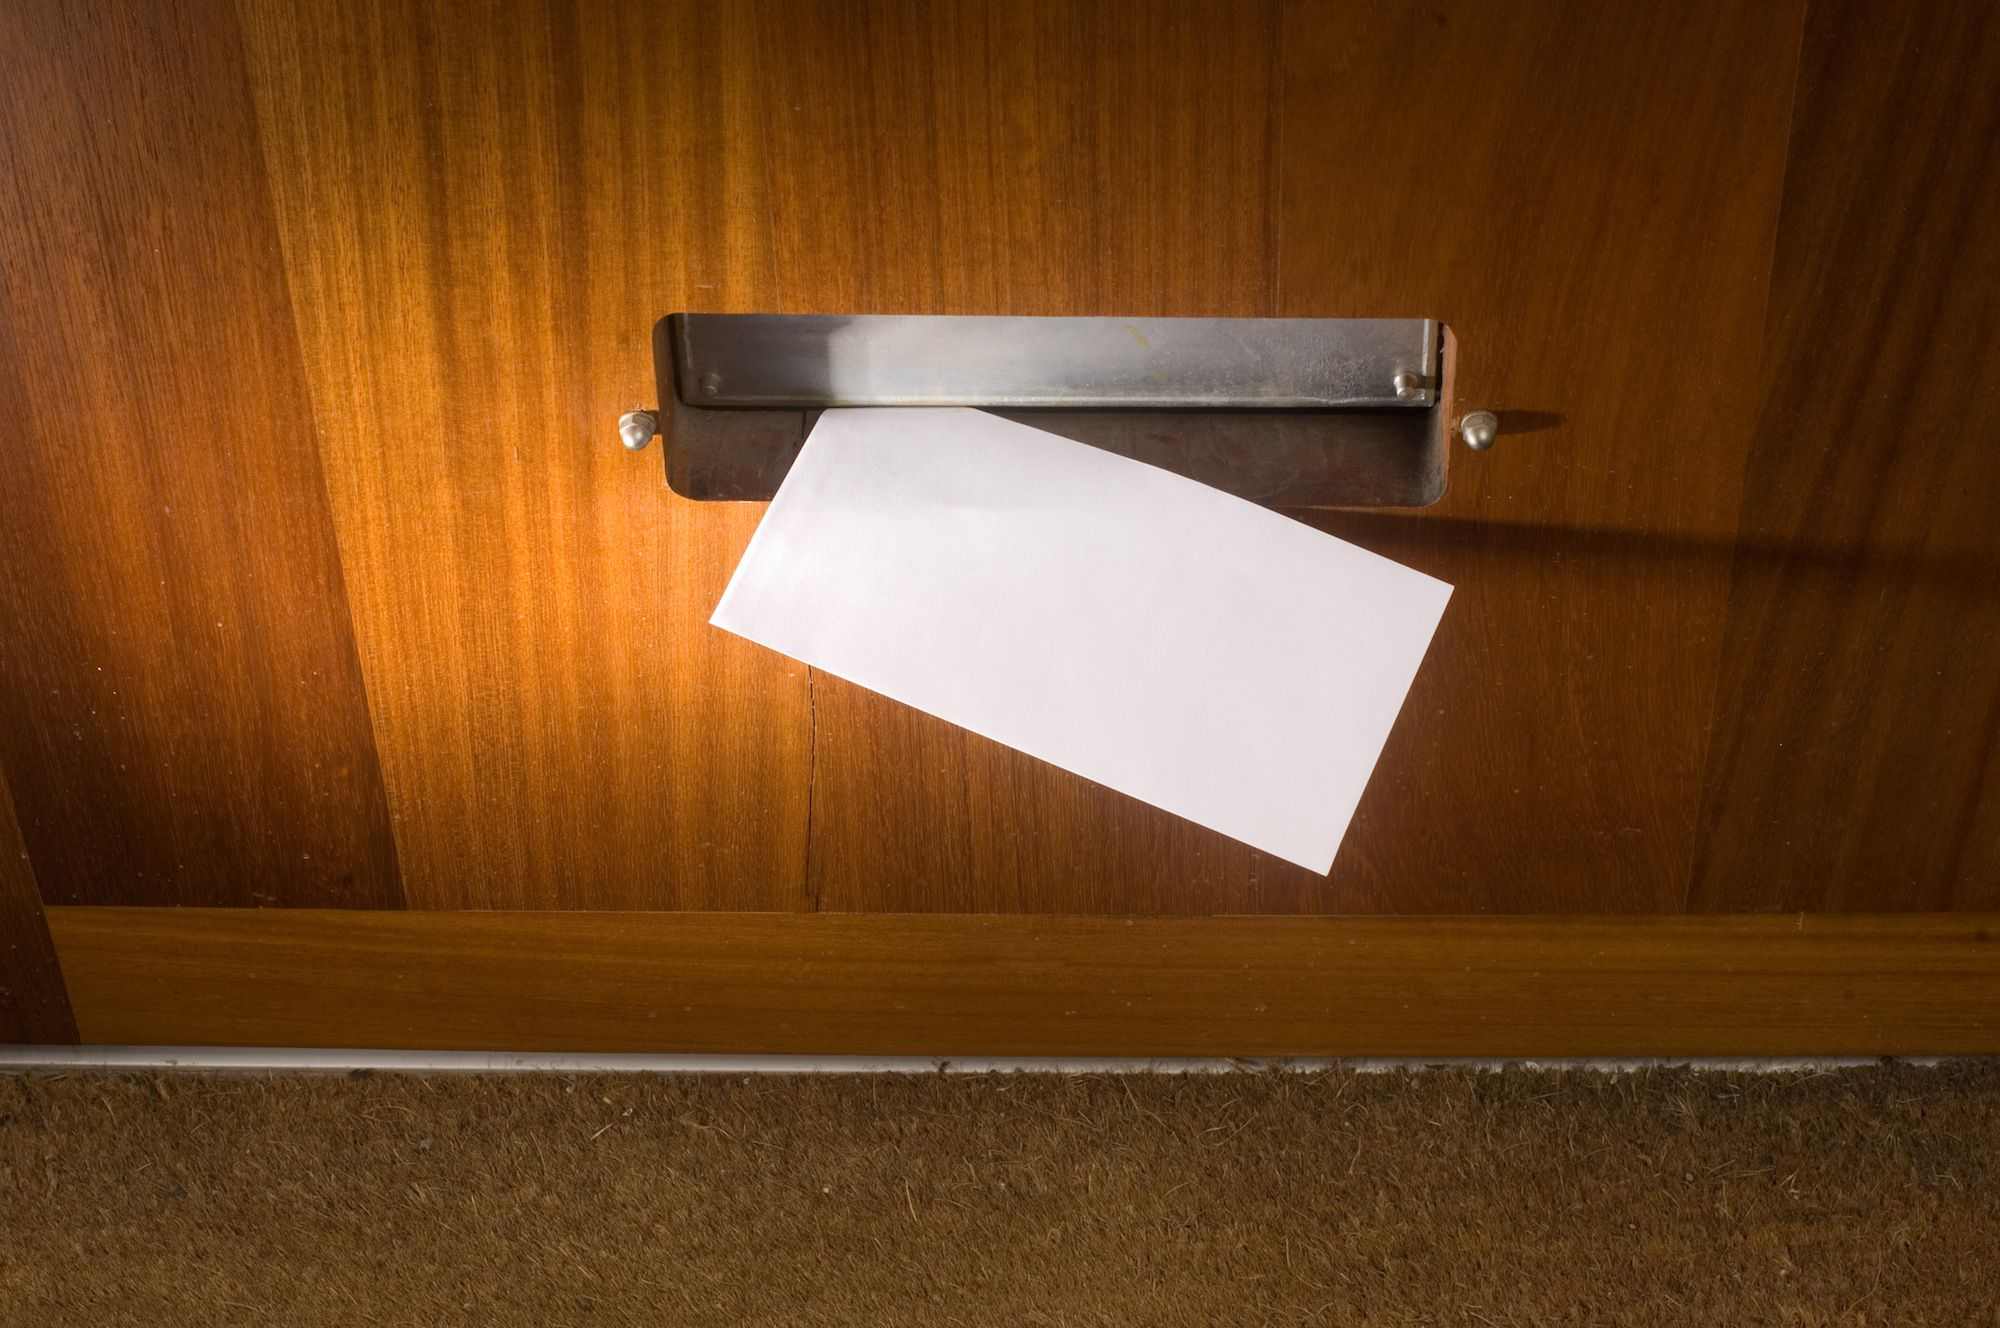 reasons you can evict a tenant